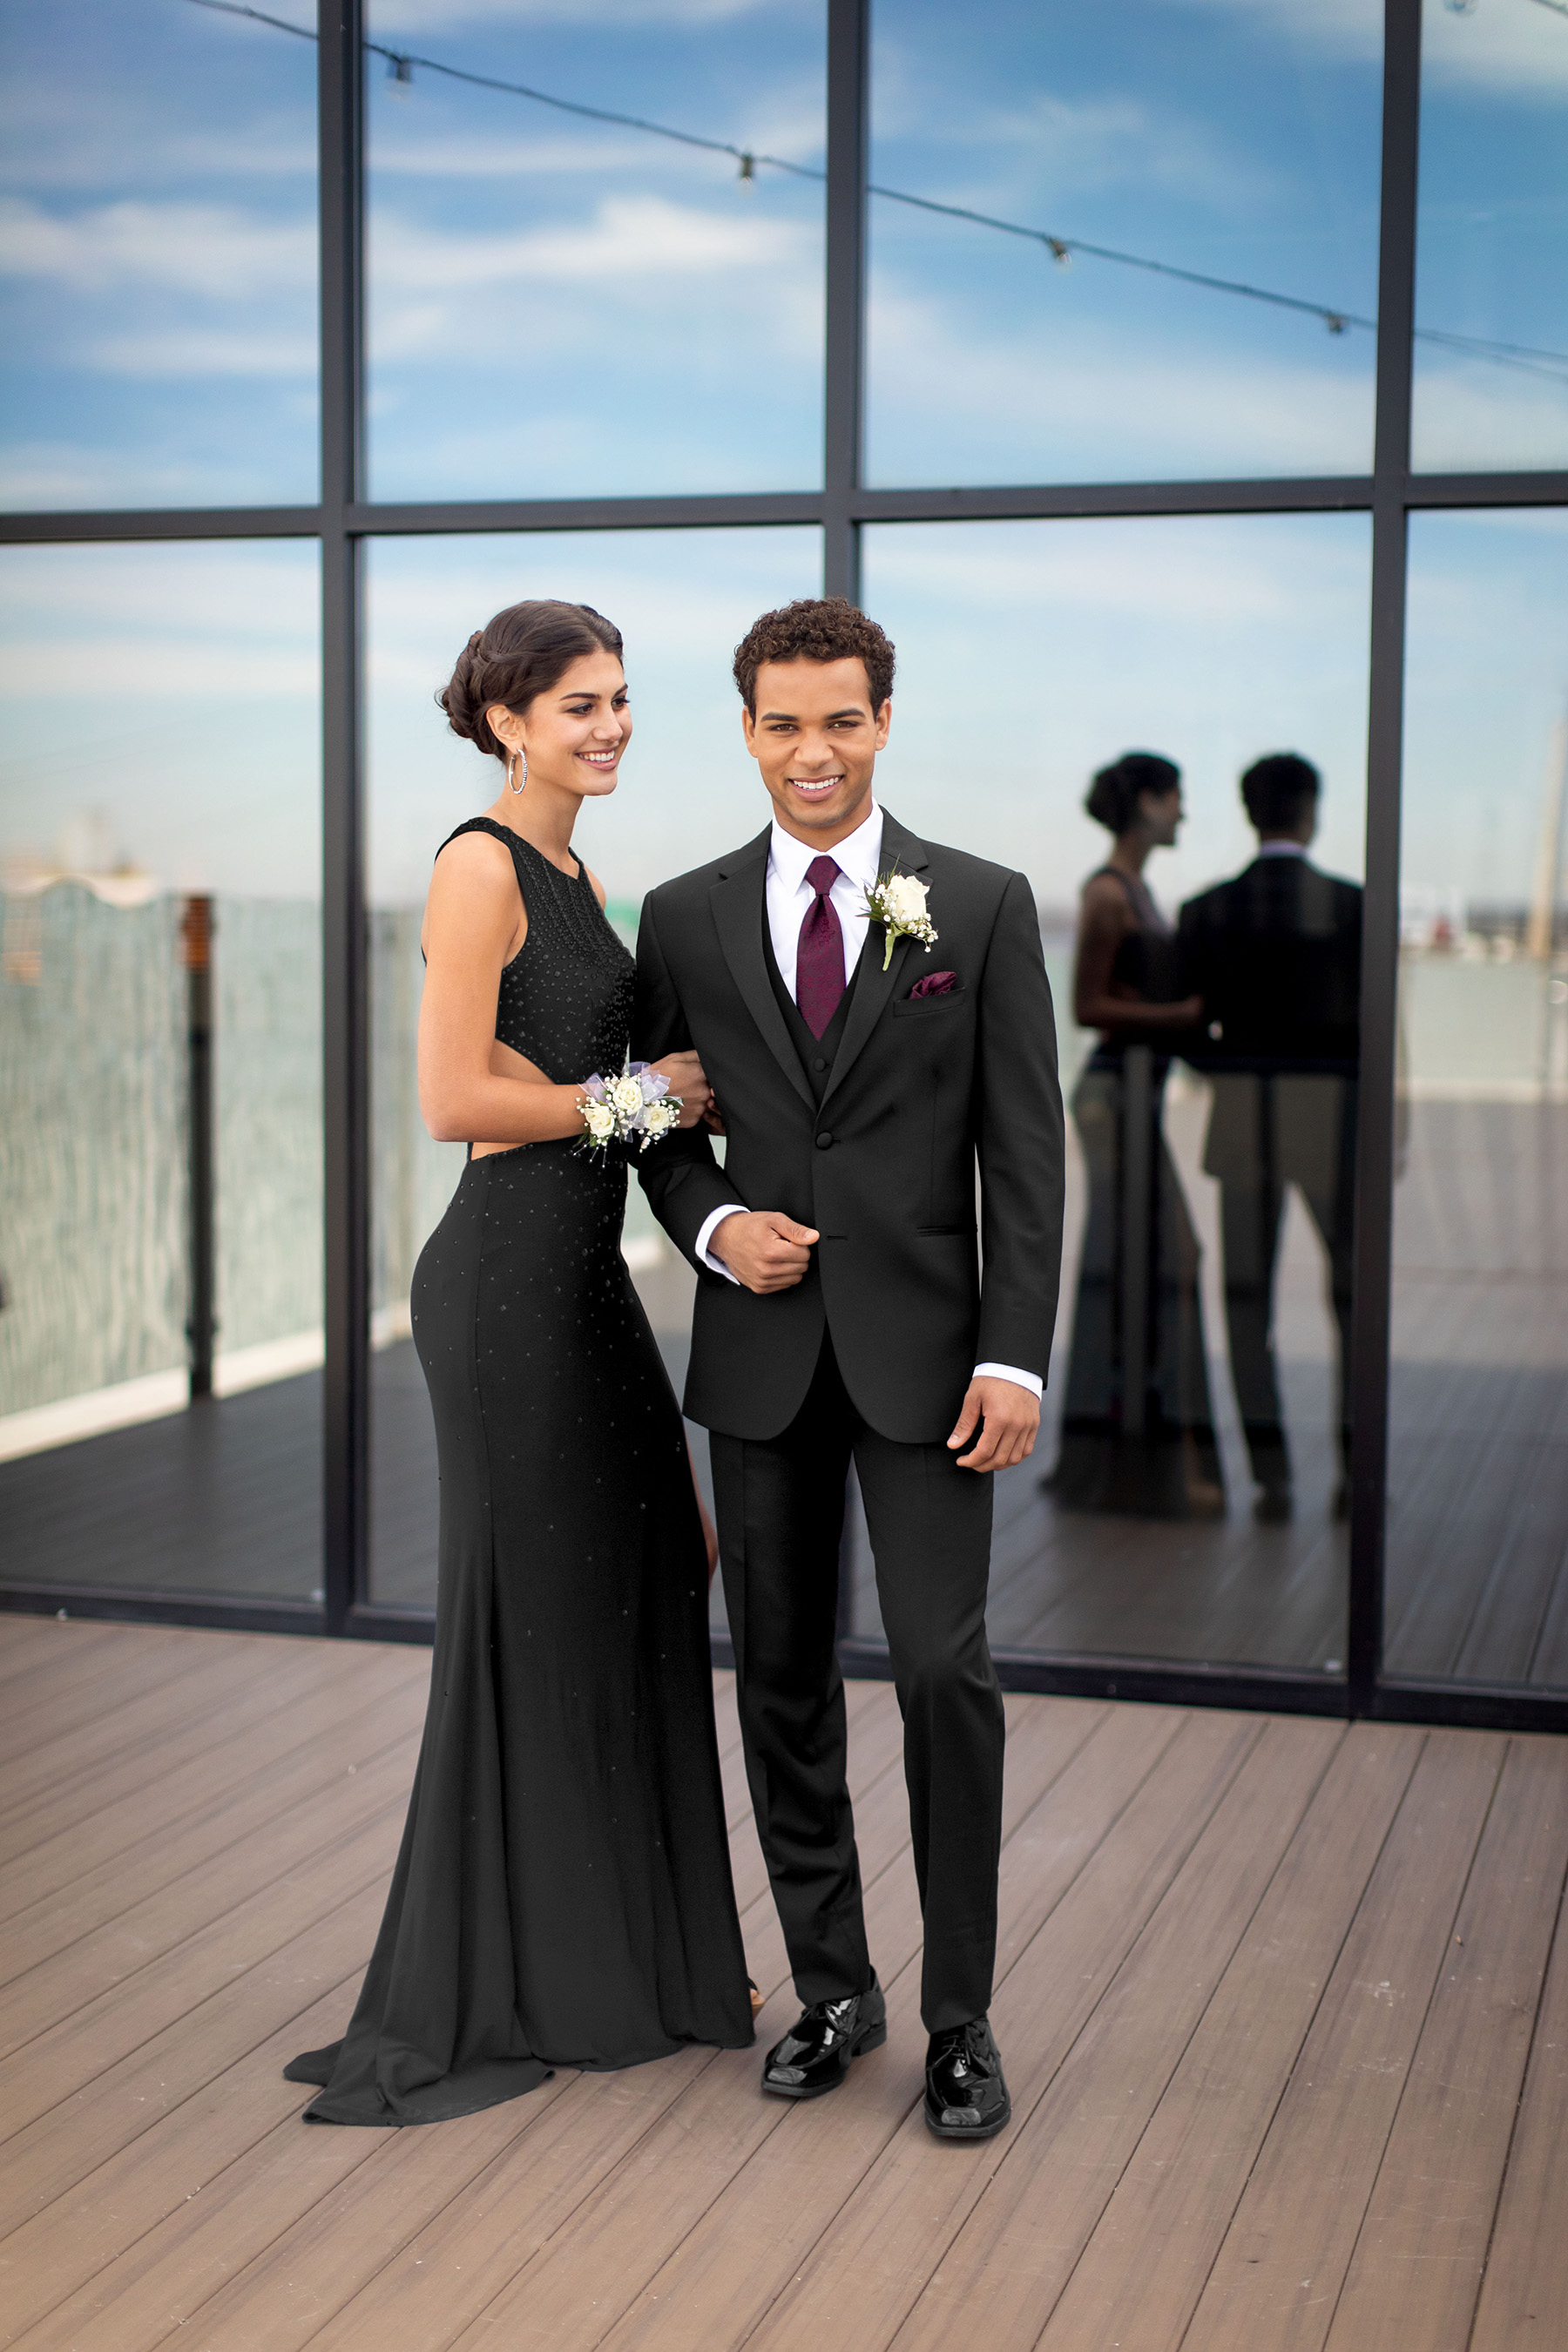 prom tuxedos - We carry the latest tuxedo styles for today's Prom customer including slimmer fit tuxedos and the newest tux colors on trend.Our 2019 Collections feature designers such as Michael Kors, Kenneth Cole, & Mark of Distinction.Find your look.